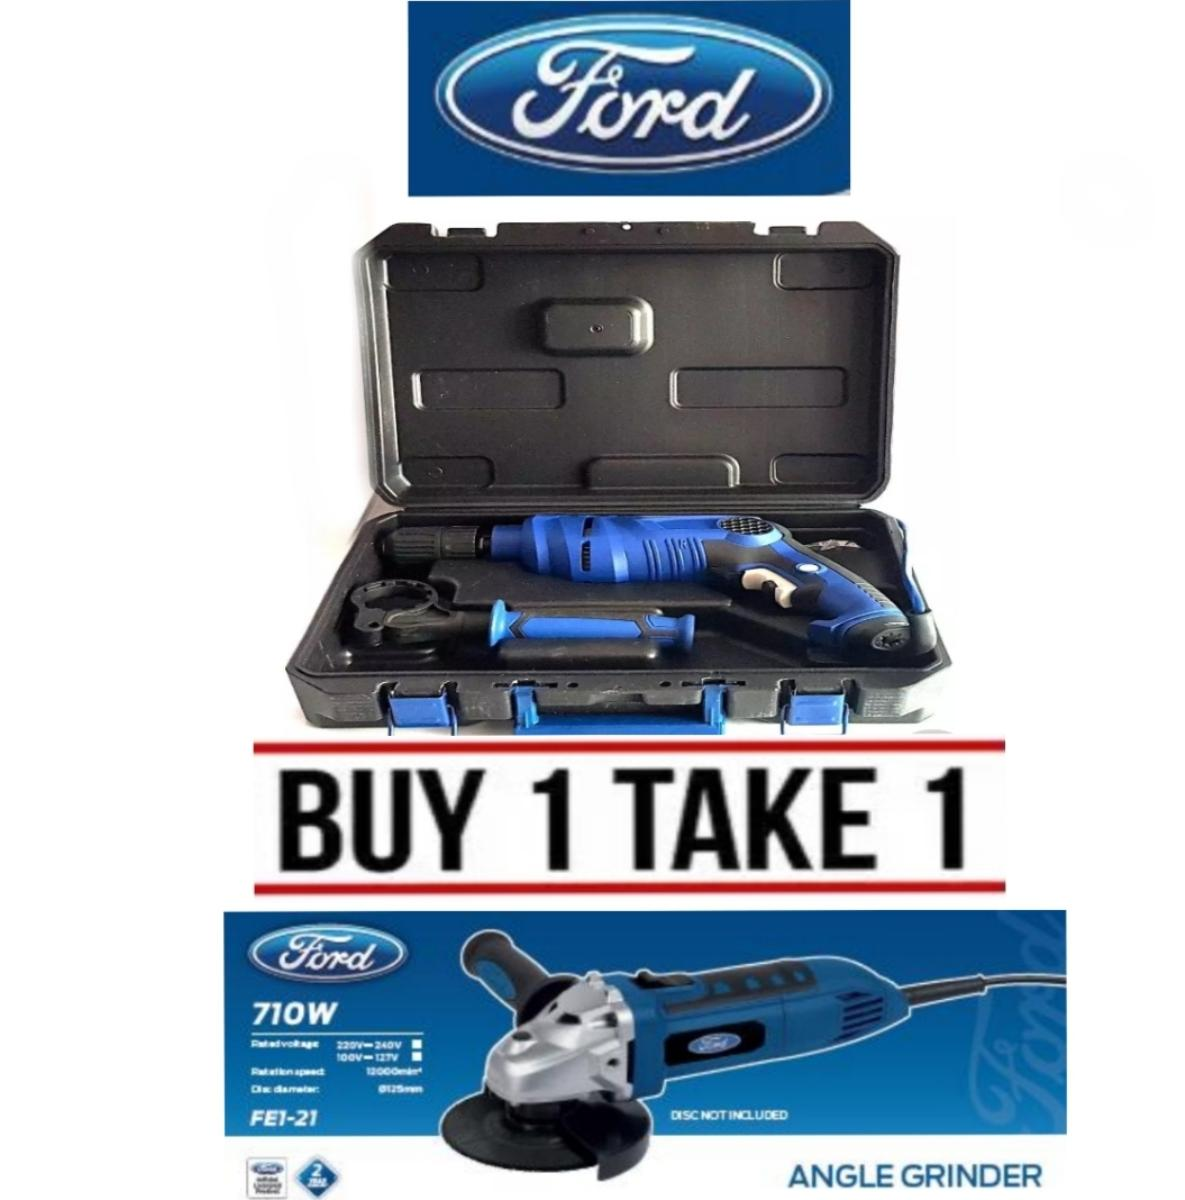 hight resolution of ford buy 1 take 1 impact drill 910w with pvc case fx1 11 angle grinder